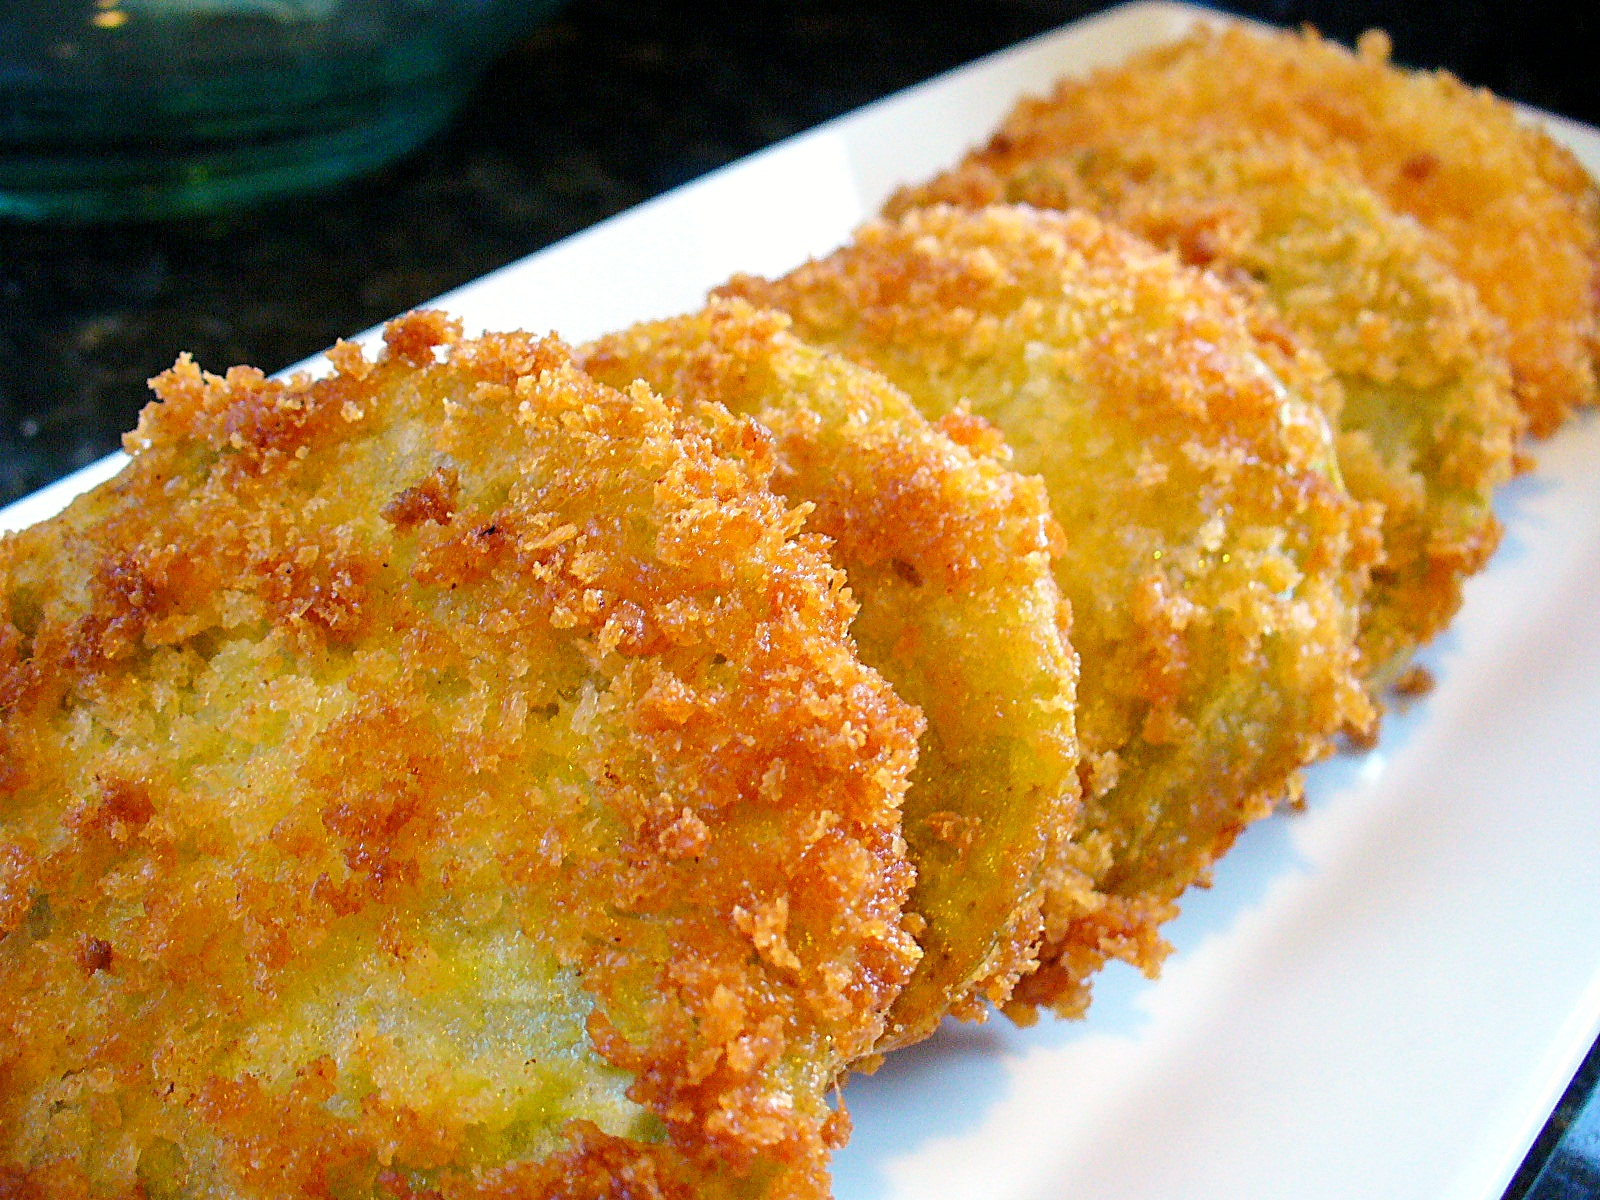 The Lonely Baker: Fried Green Tomatoes